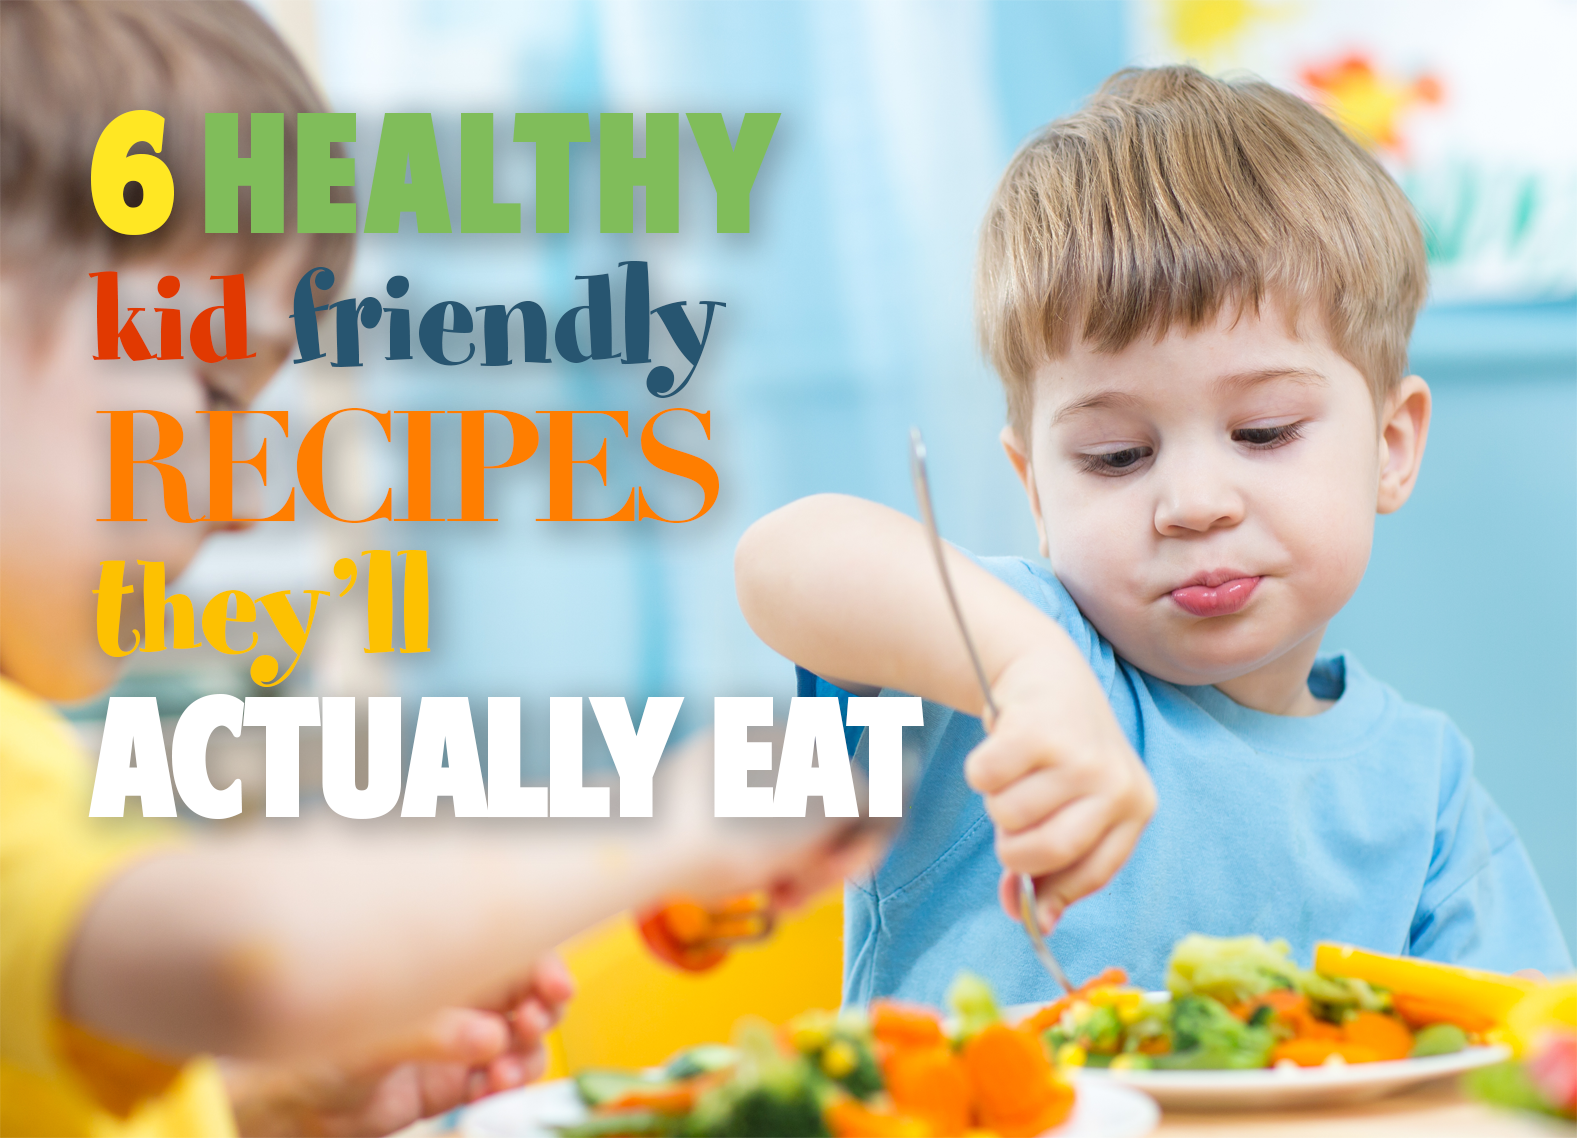 6 Simple Kid Friendly Healthy Recipes They Will Actually Eat